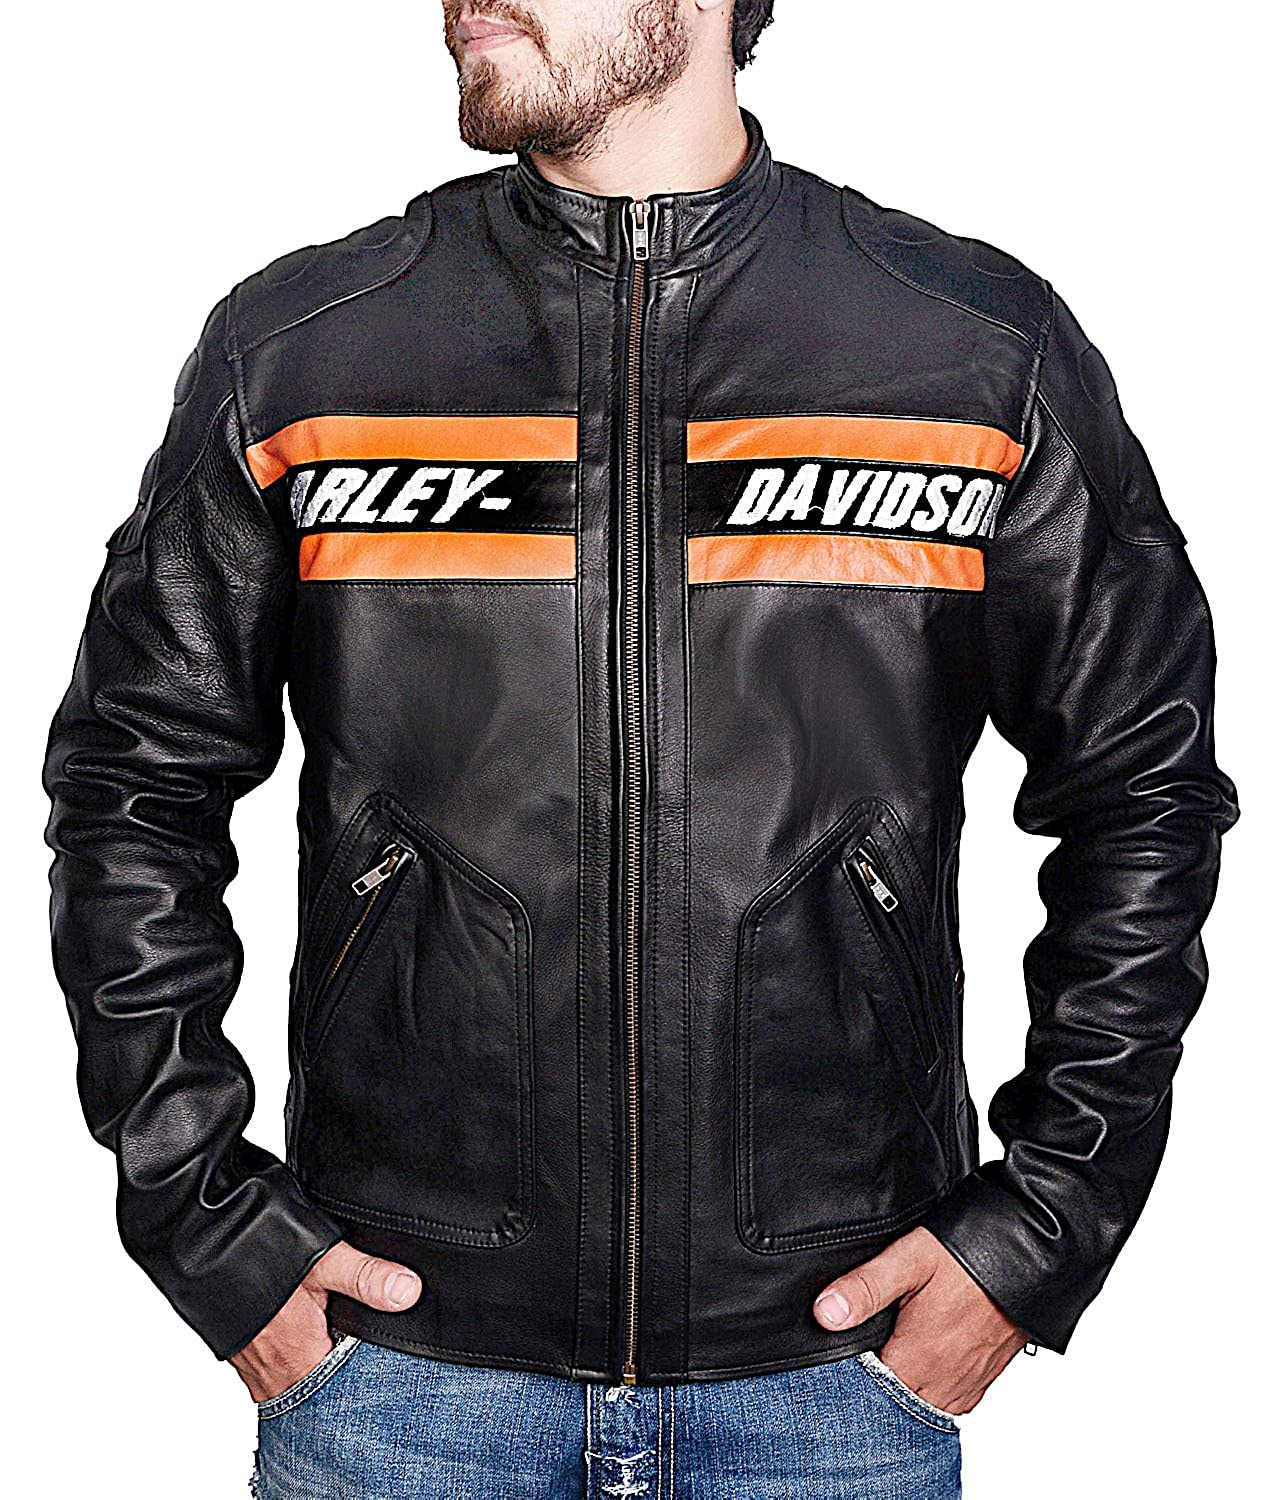 Bill Goldberg WWE Harley Davidson Motorcycle Vintage Biker Real Leather Jacket The Custom Jacket